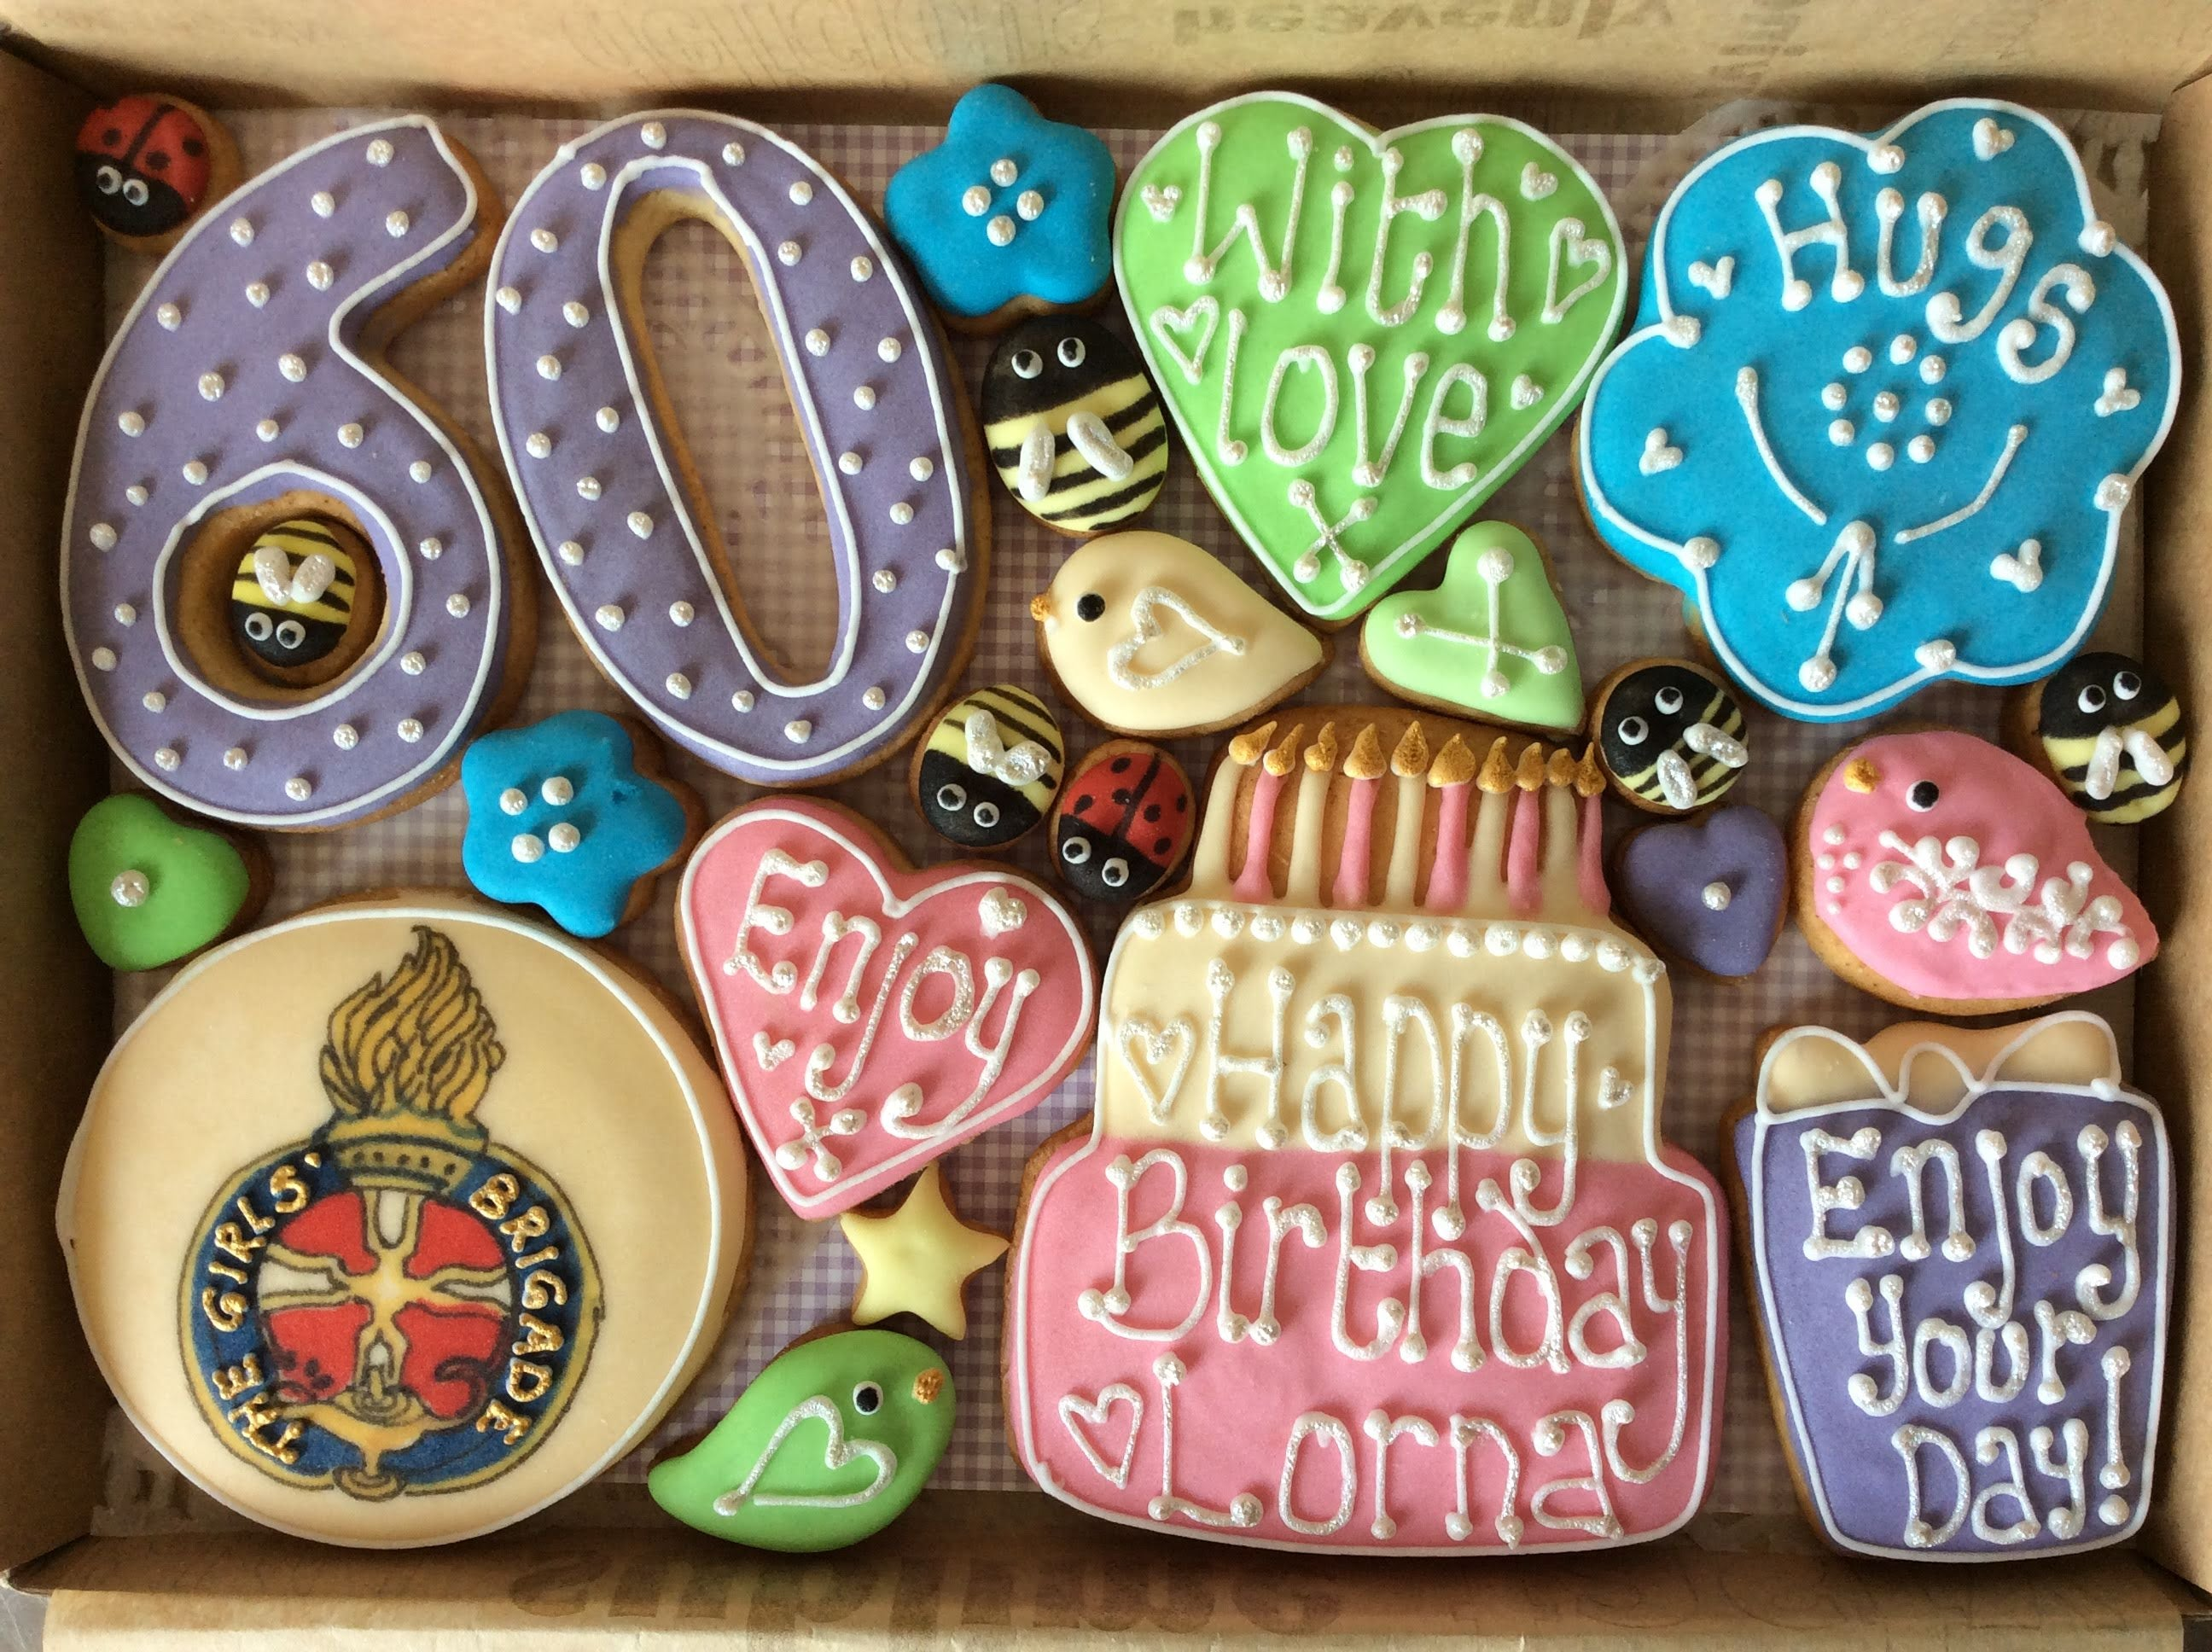 Bespoke Cookie Box - A Story in a Box (Medium)